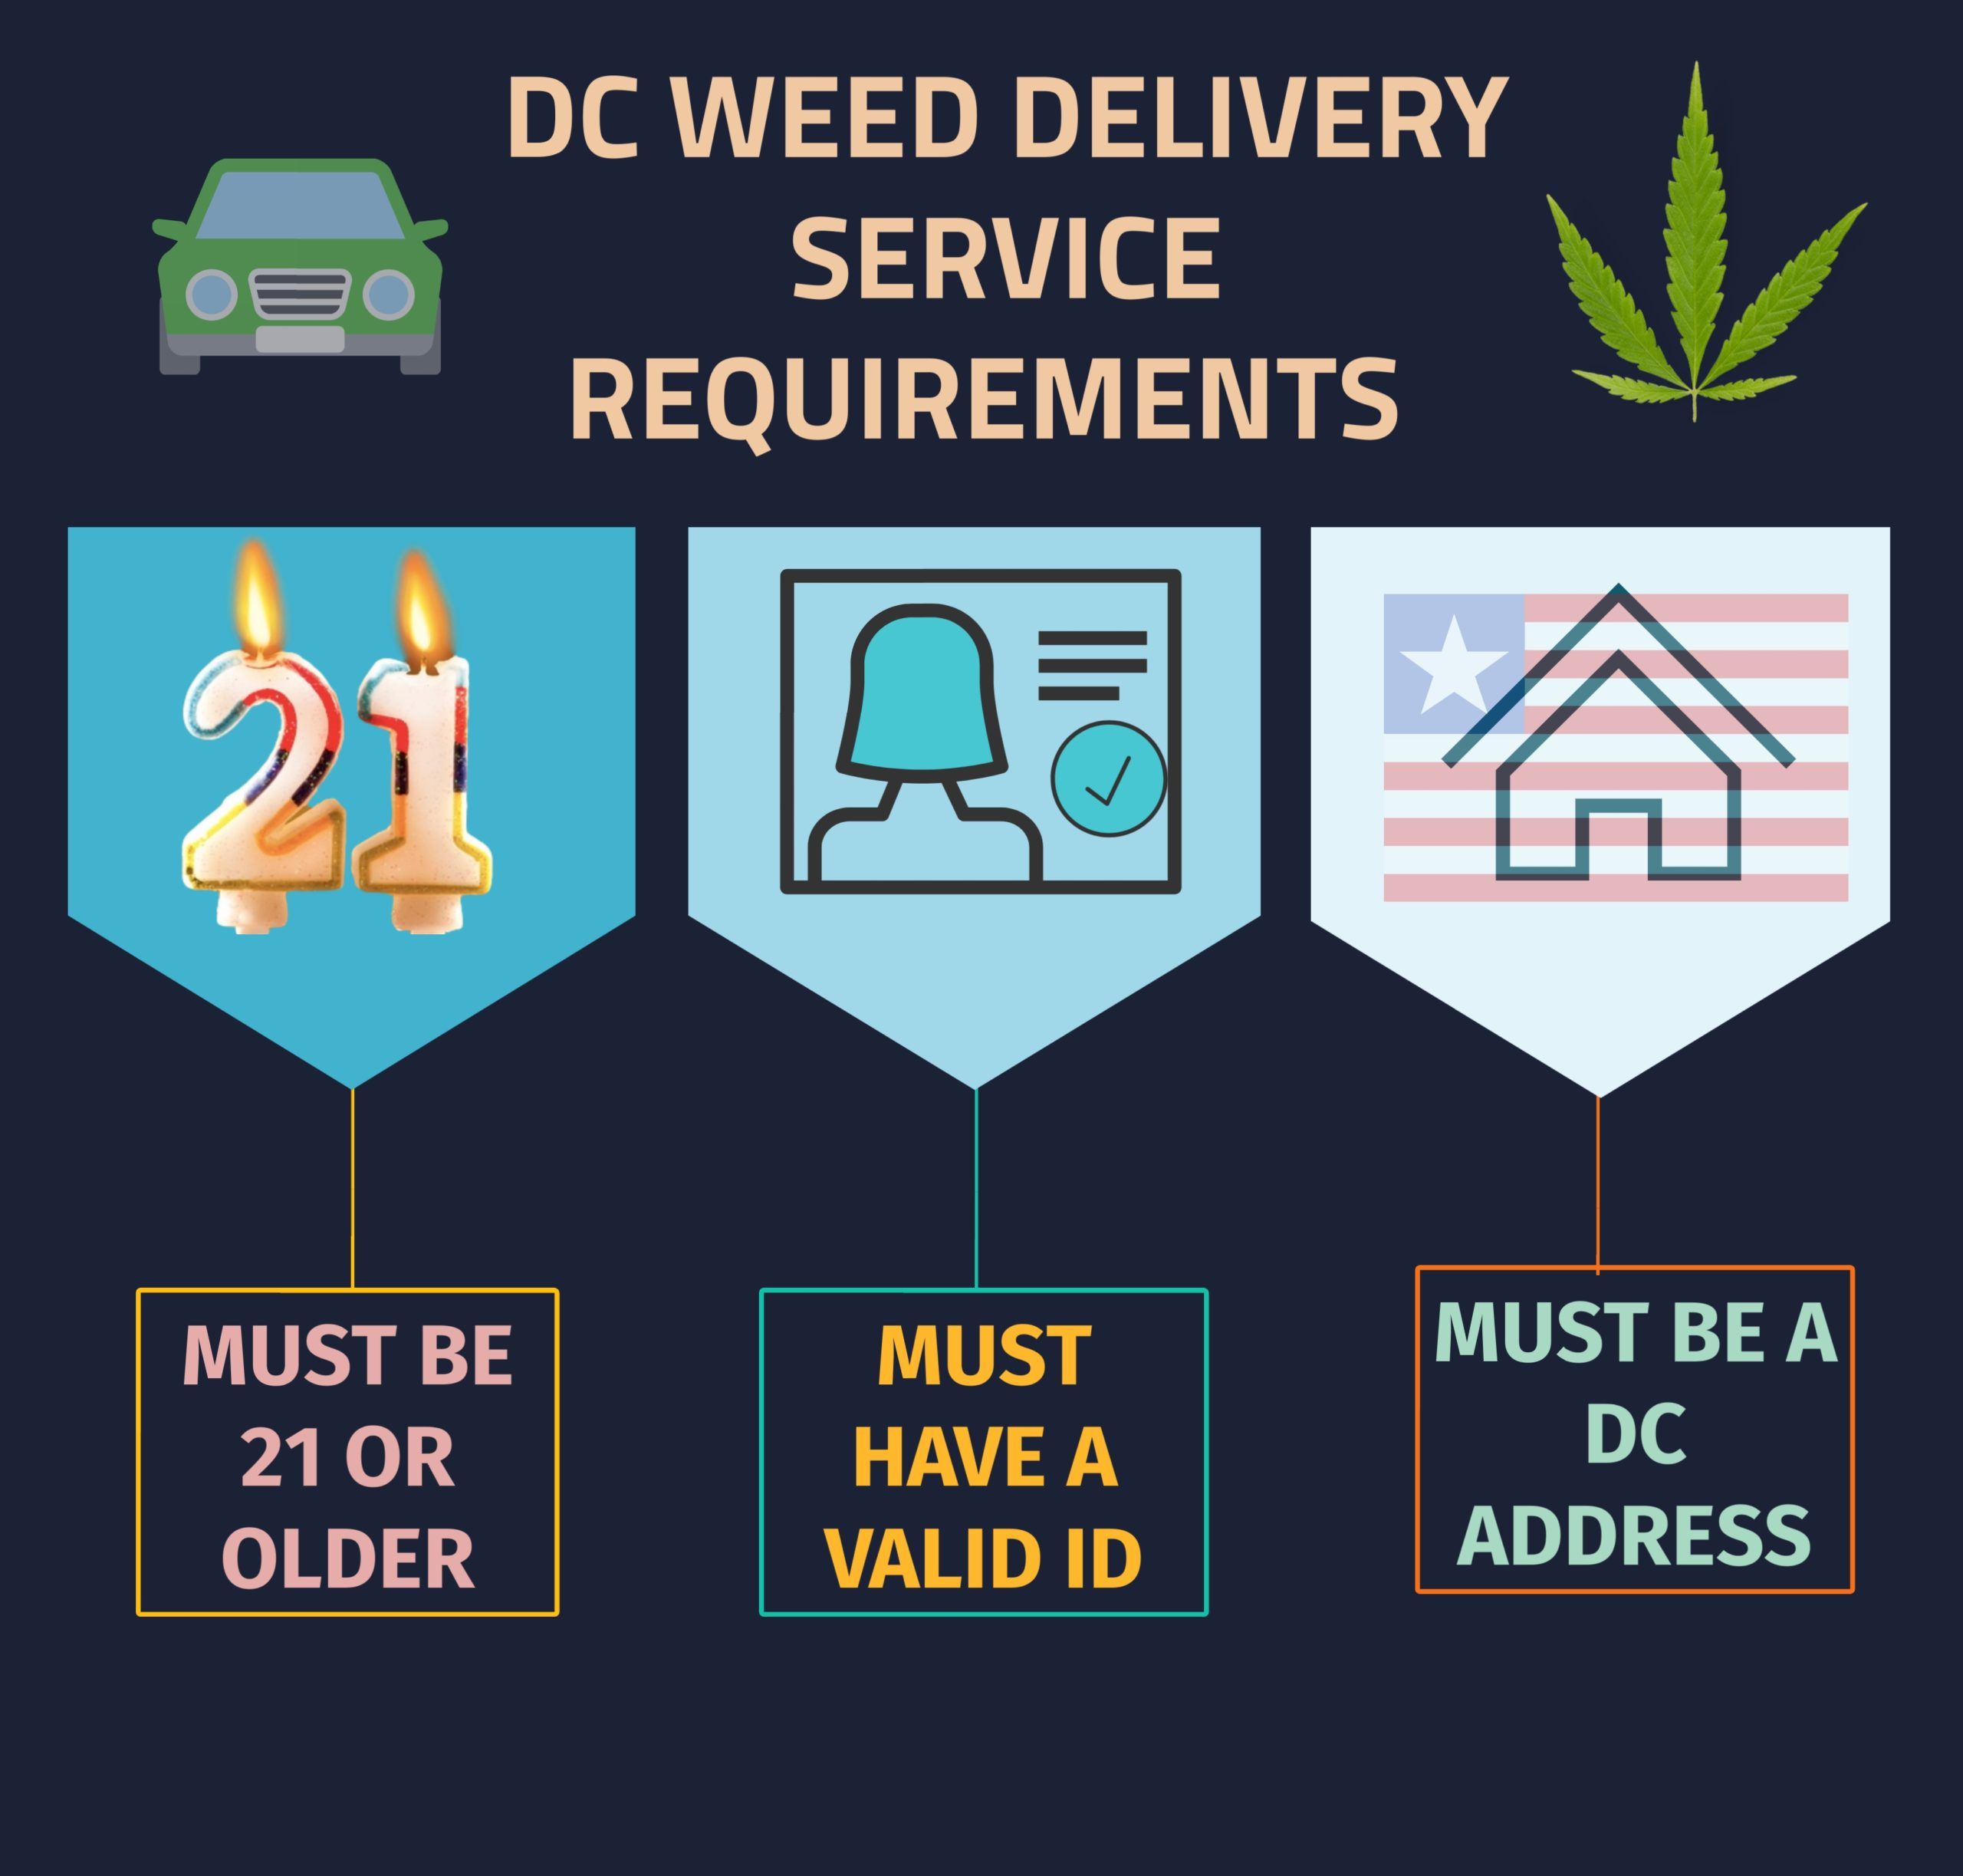 dc weed delivery requirements